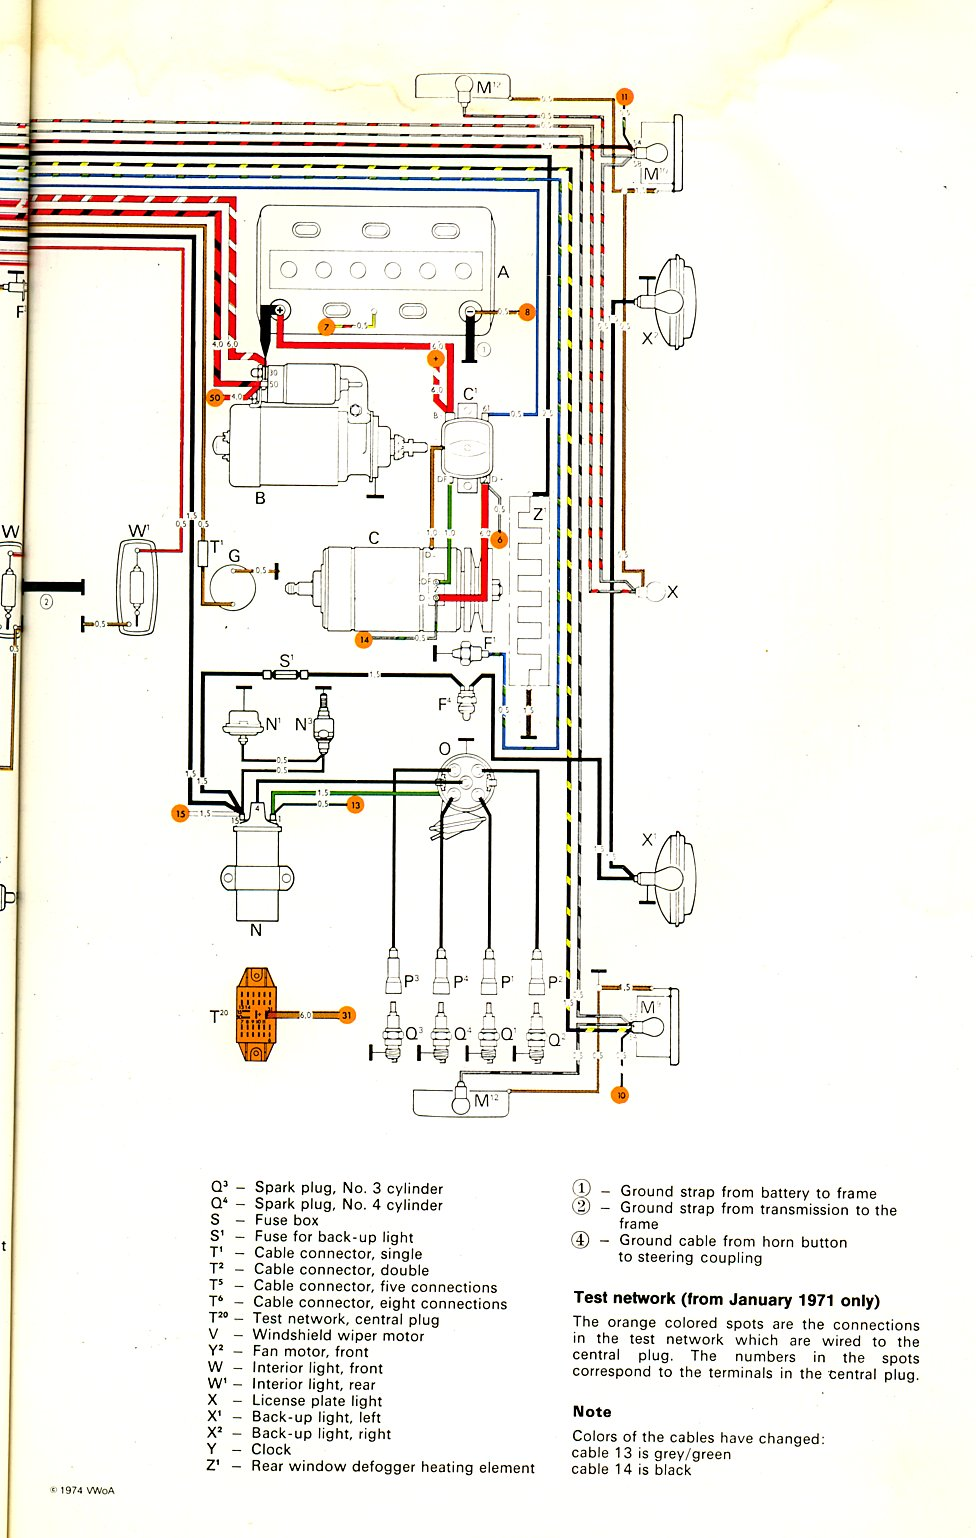 73 Camaro Wiring Diagram Library 4 Cylinder 80 Corvette Fuse Box Auto Electrical Rh Harvard Edu Co Uk Sistemagroup Me